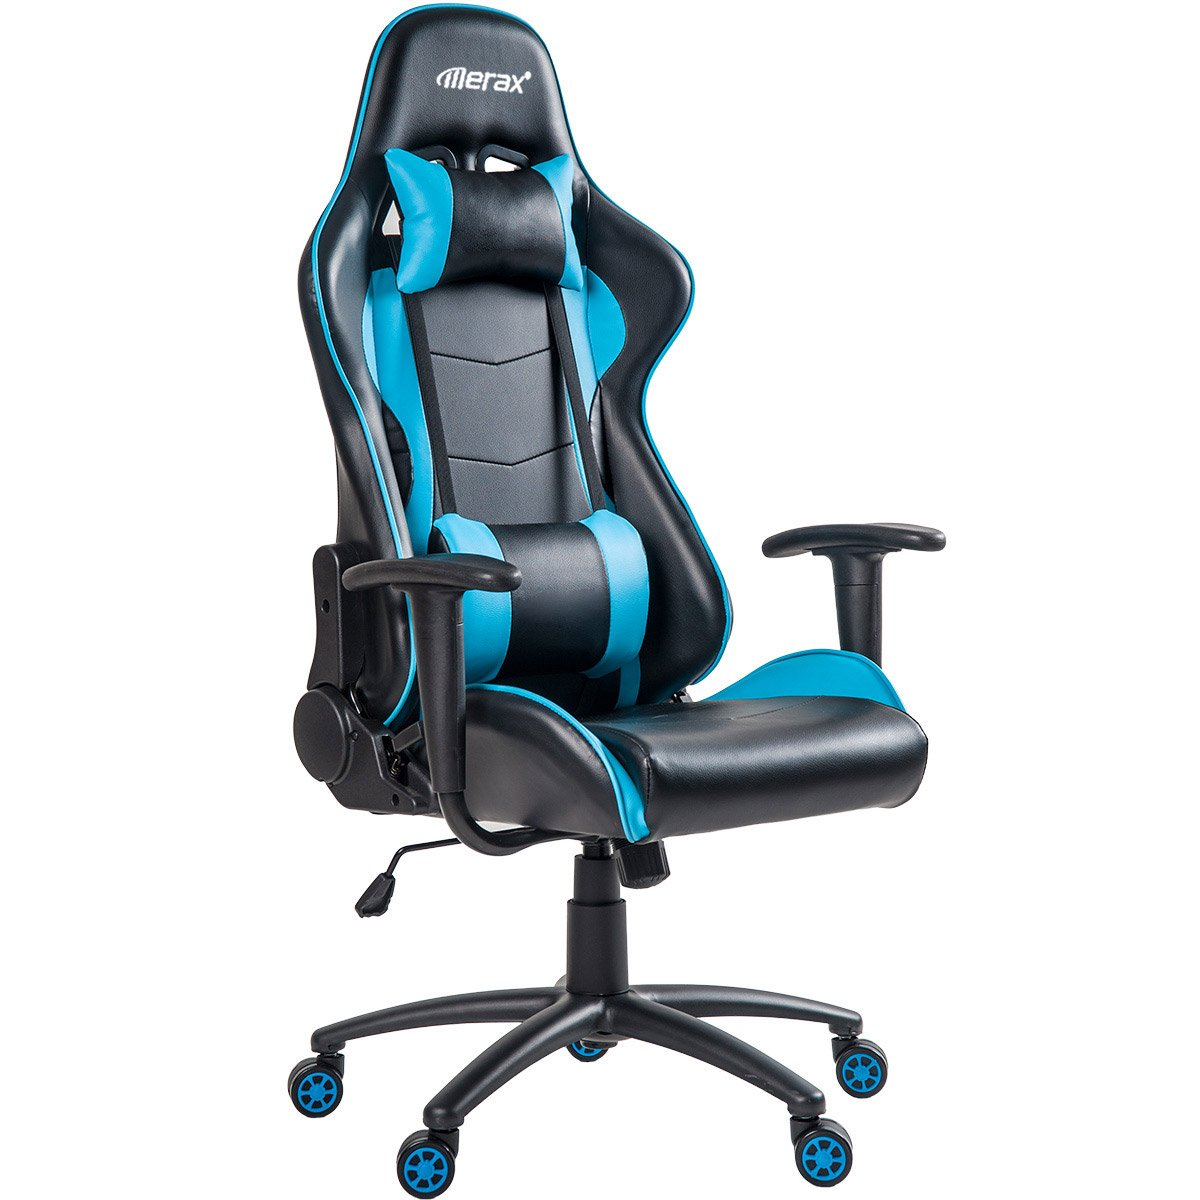 Merax Ergonomic High Back Swivel Racing Style Gaming Chair PU Leather with Lumbar Support and Headrest (Blue) by Merax